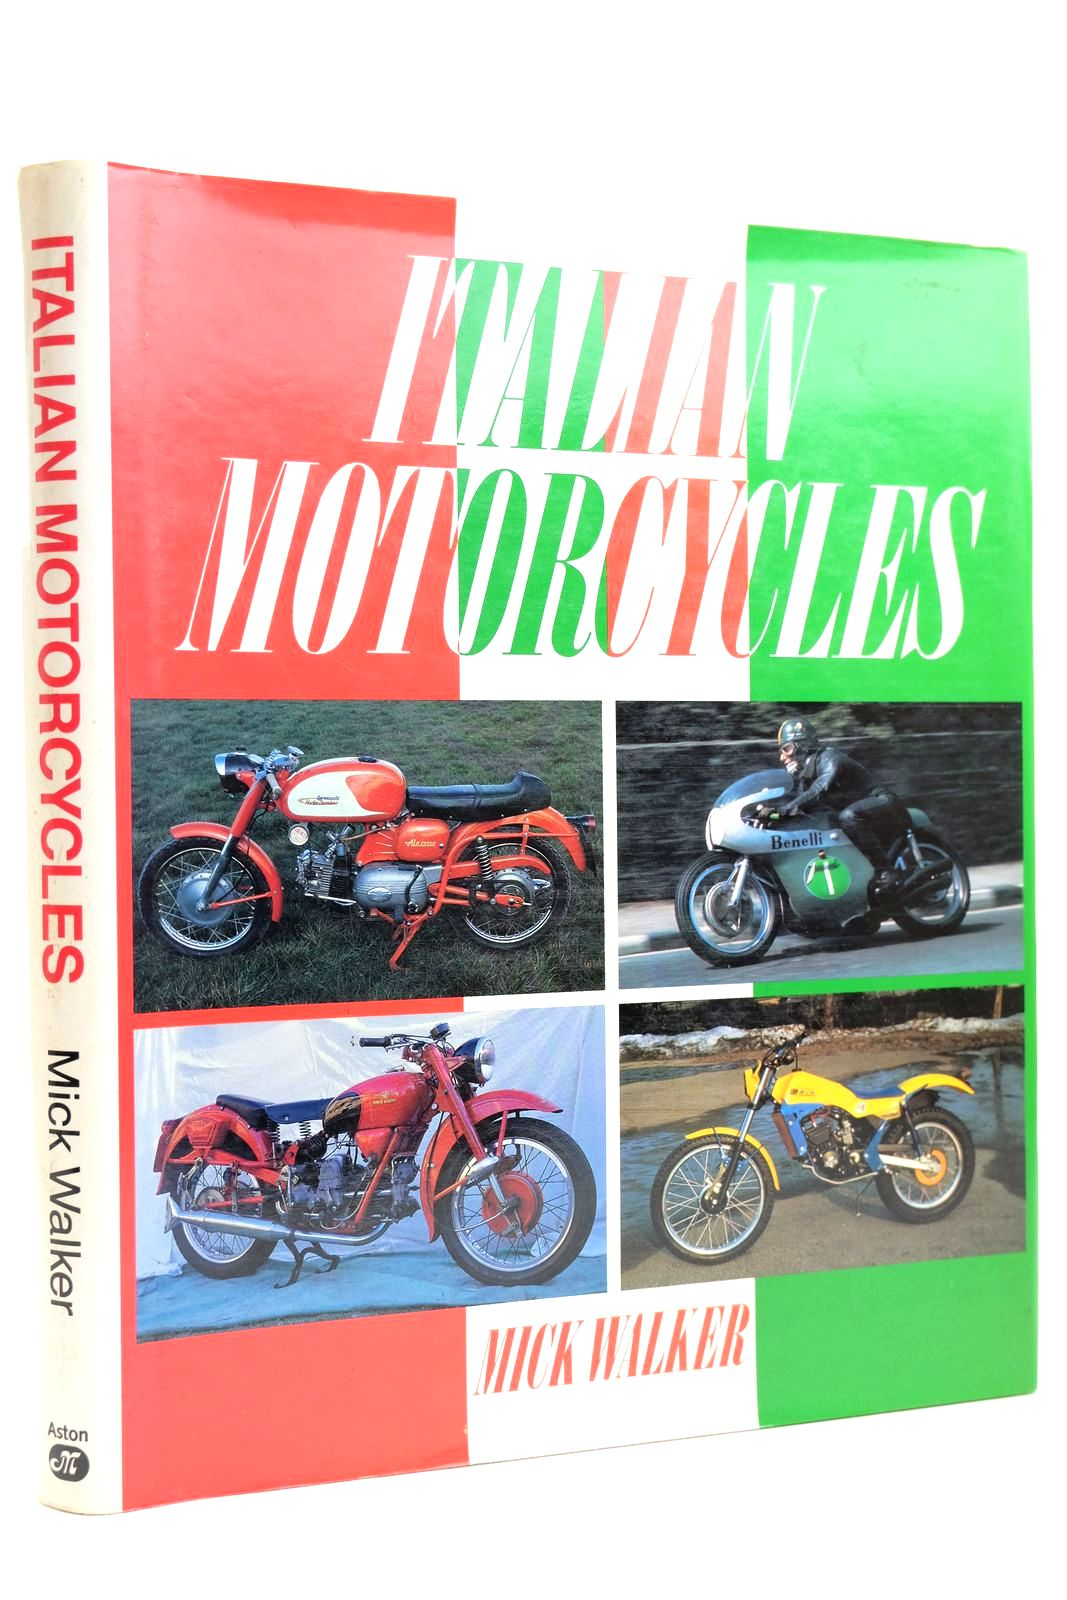 Photo of ITALIAN MOTORCYCLES written by Walker, Mick published by Aston Publications (STOCK CODE: 2131868)  for sale by Stella & Rose's Books